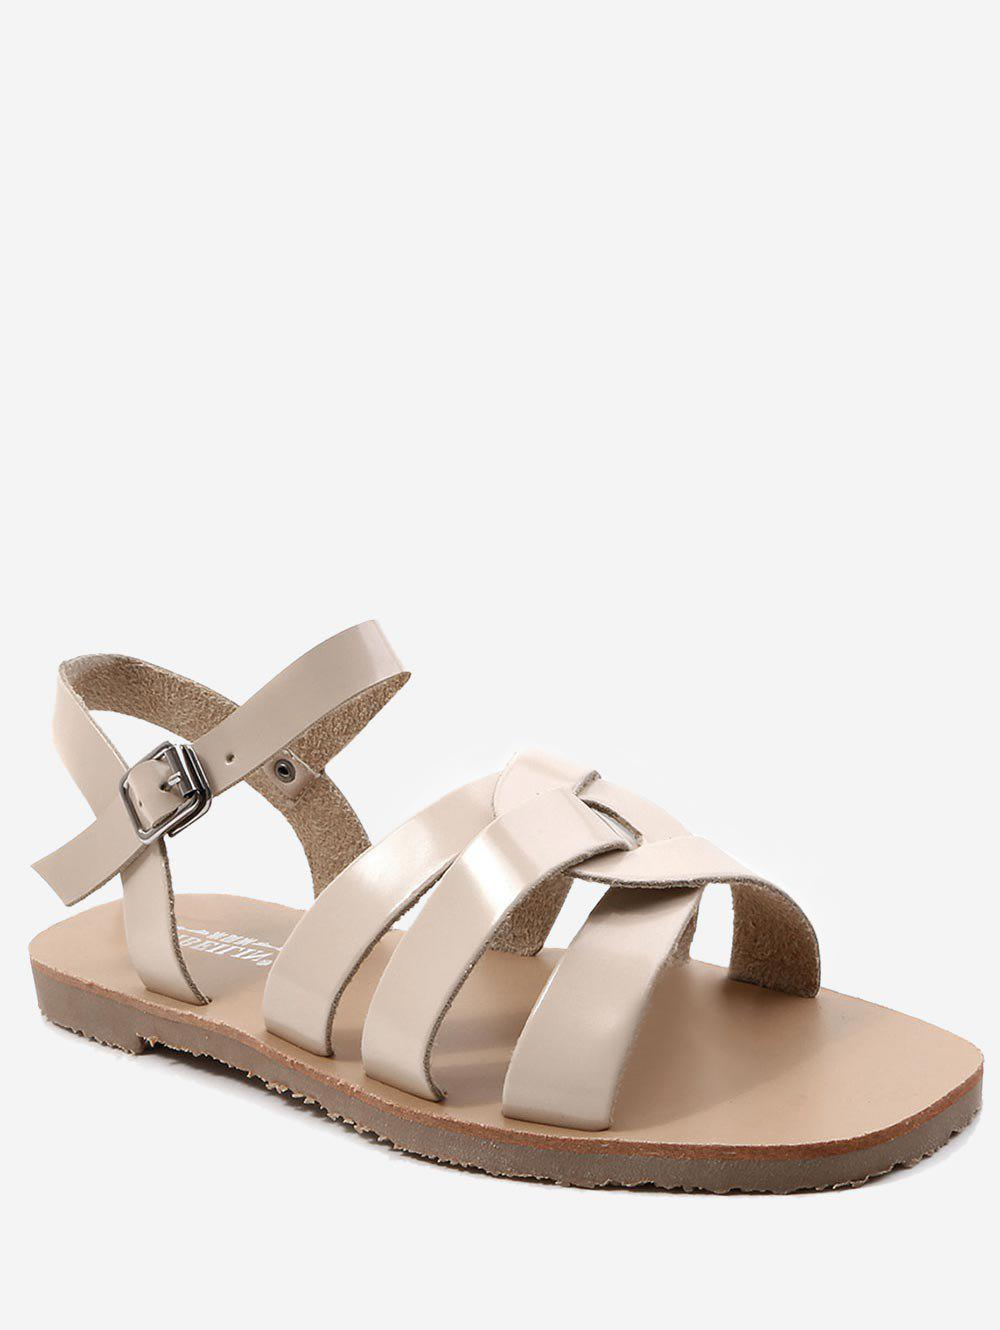 Leisure Vacation Cross Flat Heel Sandals - APRICOT 40